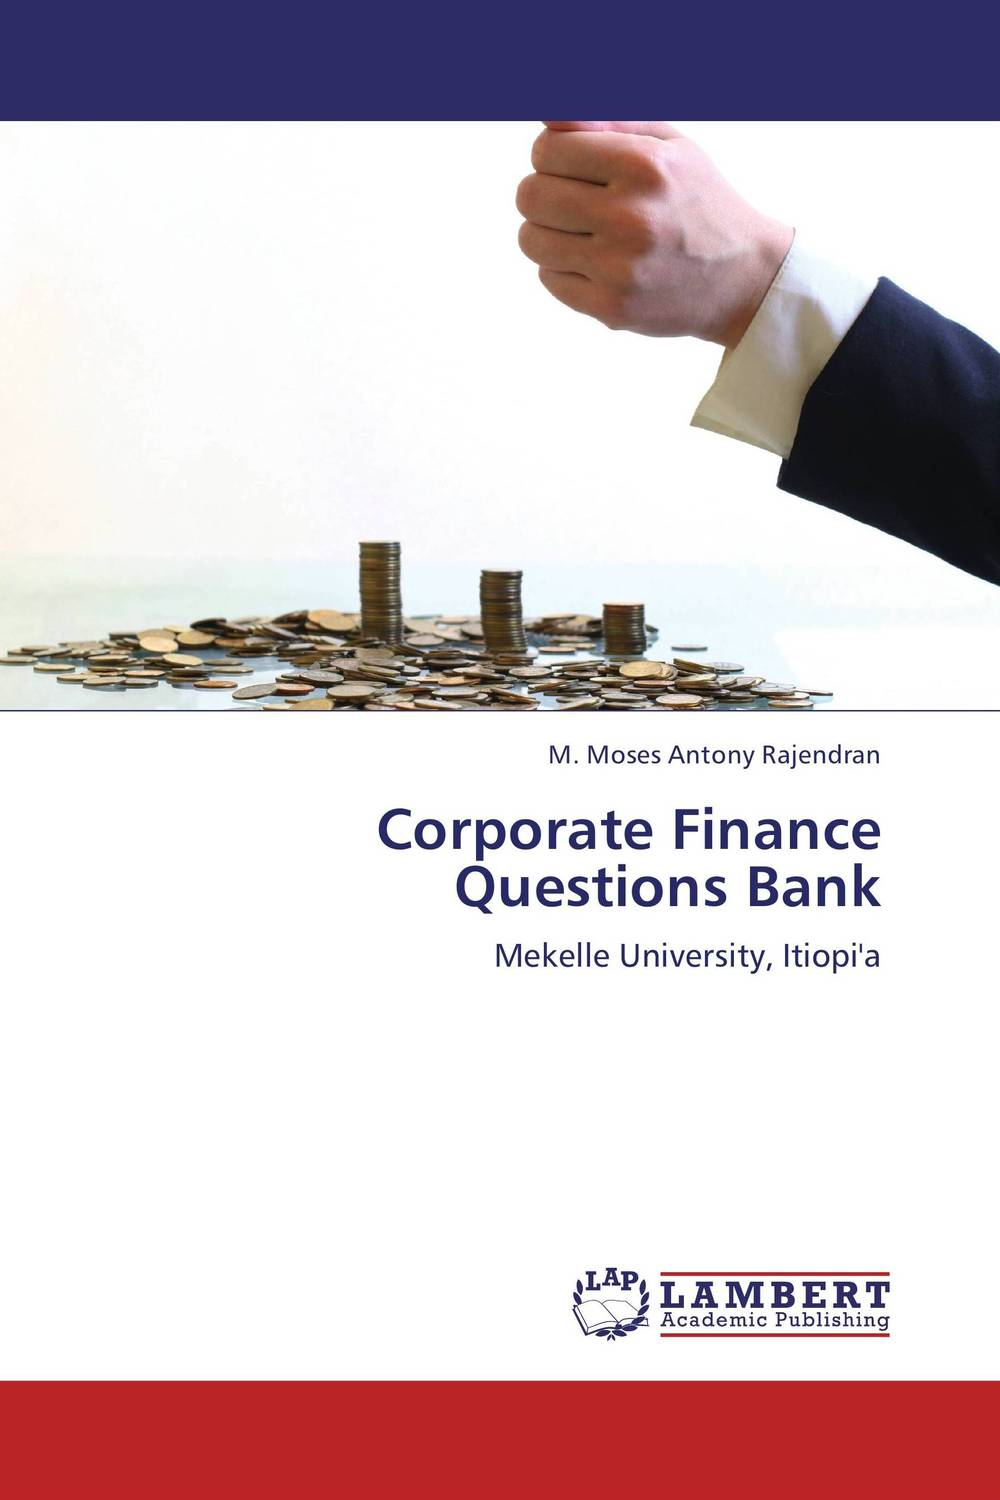 Corporate Finance Questions Bank capital structure and risk dynamics among banks